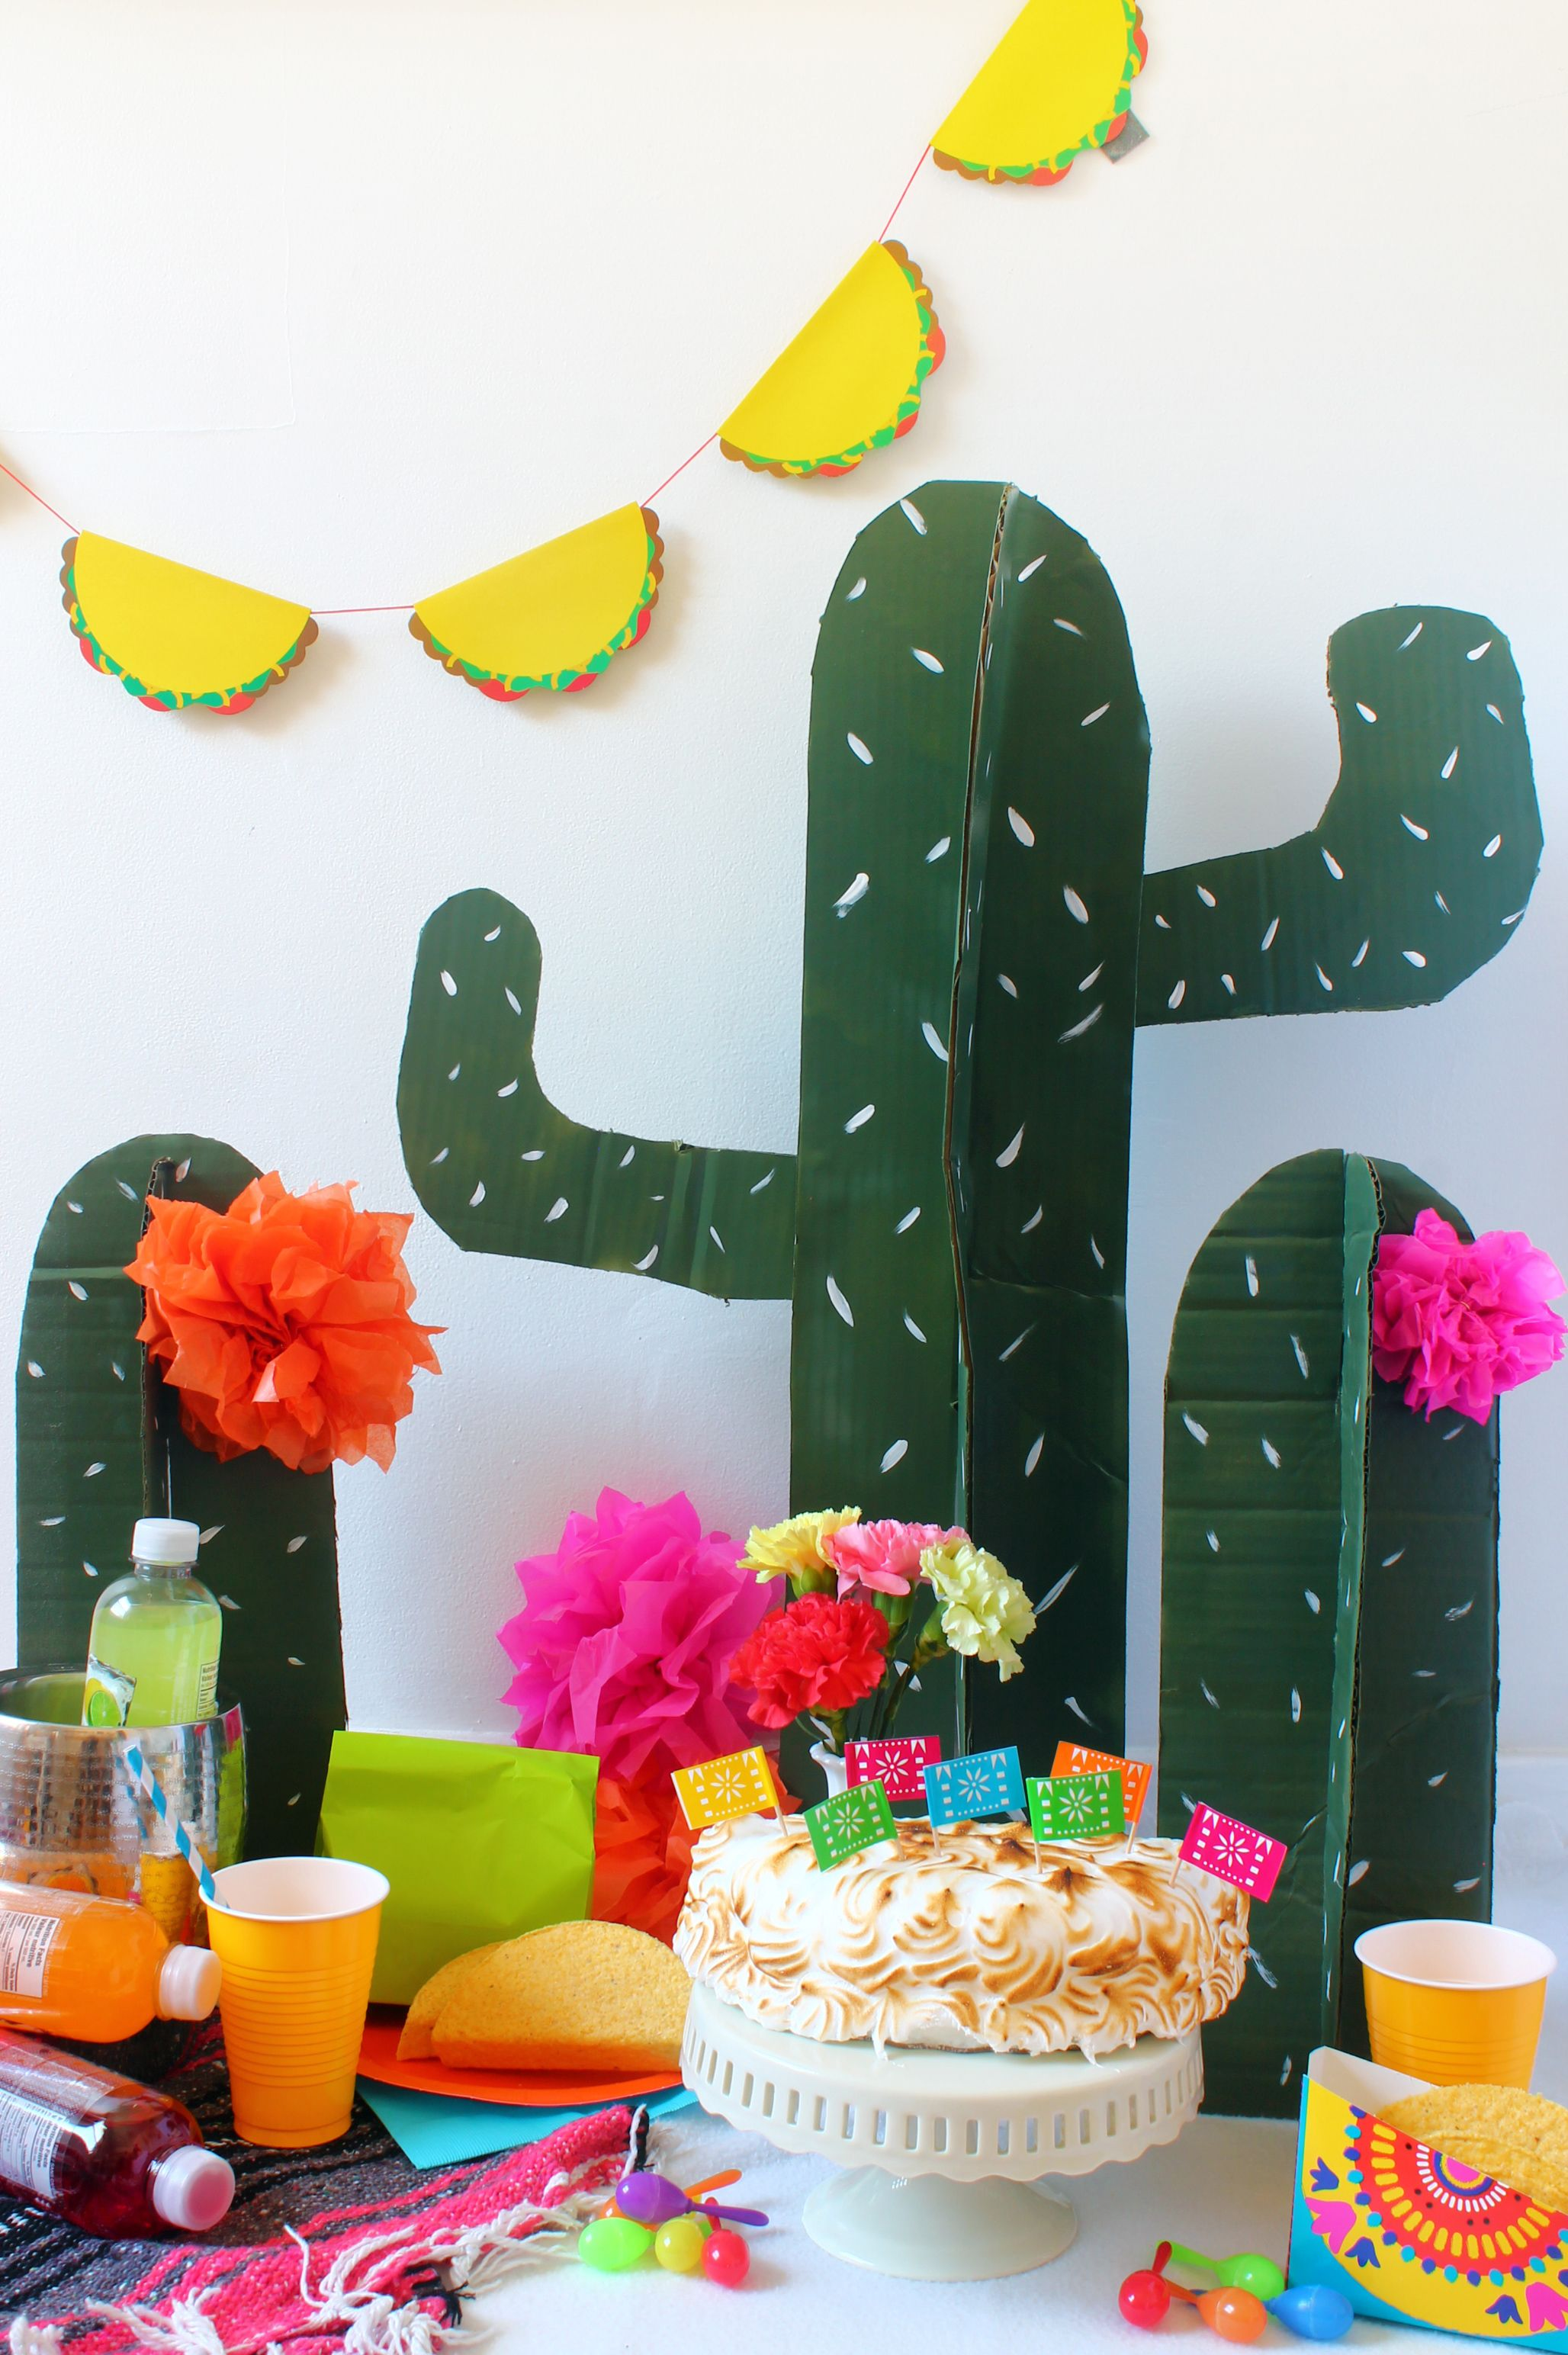 Make These Cactus Props Out Of Cardboard And Paint For Your Next Fiesta Party